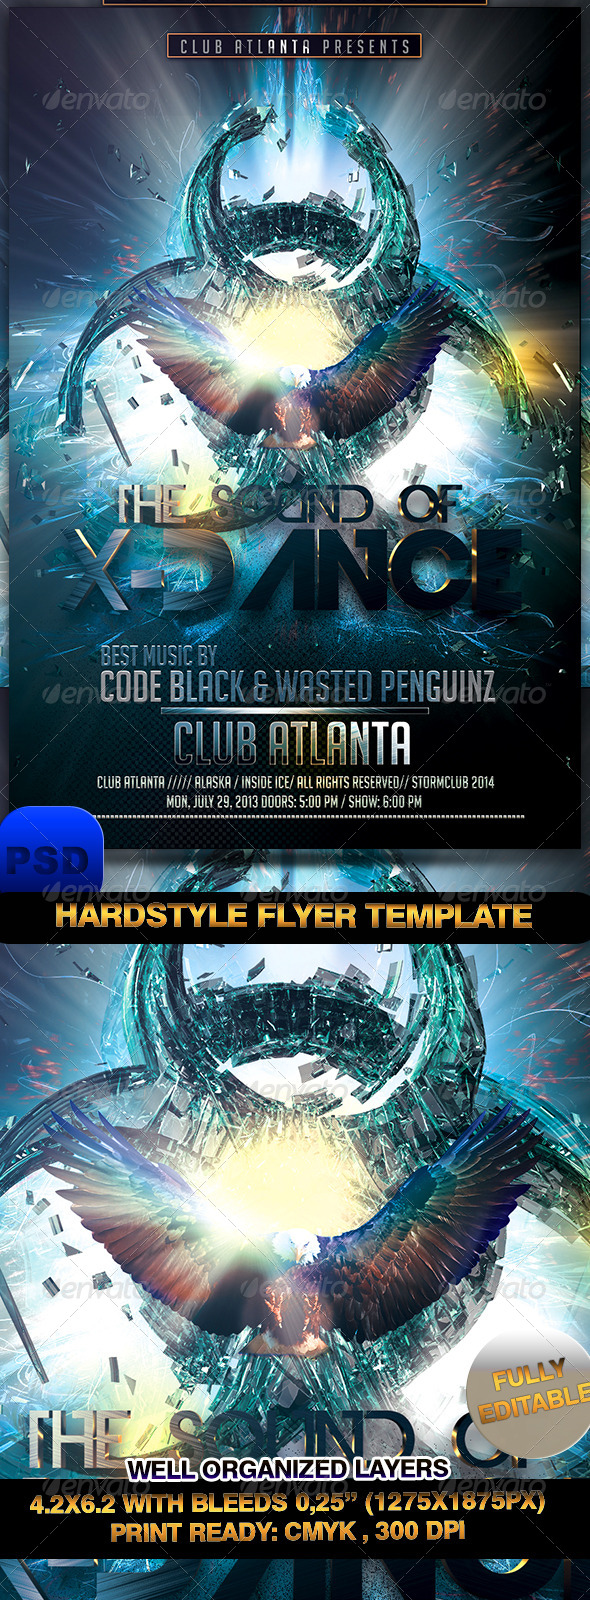 GraphicRiver Hardstyle Flyer Template 7236273